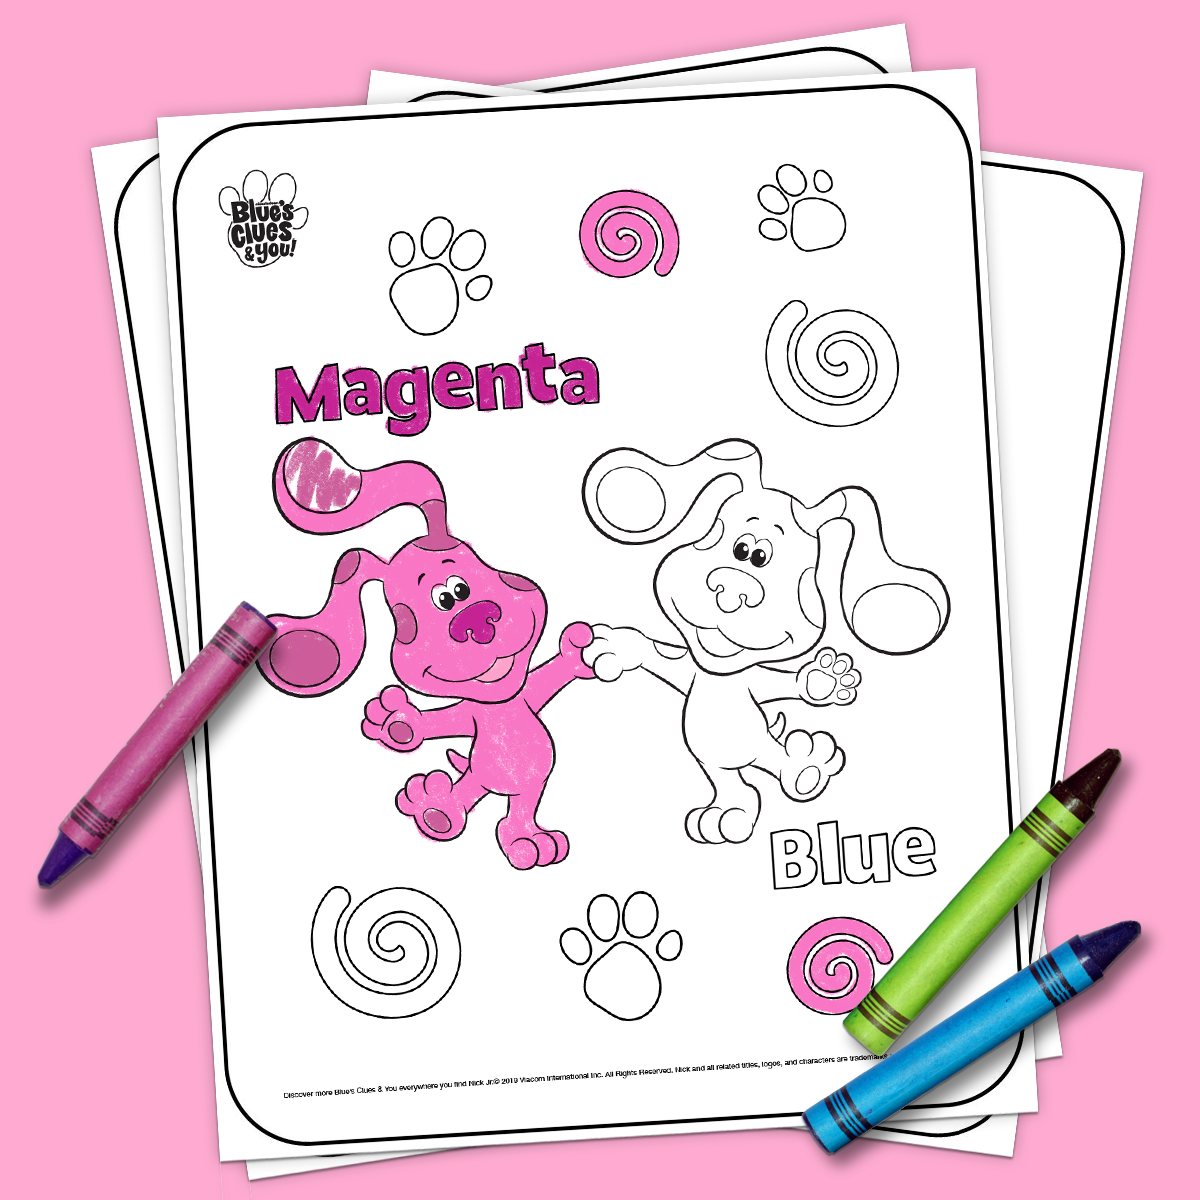 Magenta & Blue coloring pages